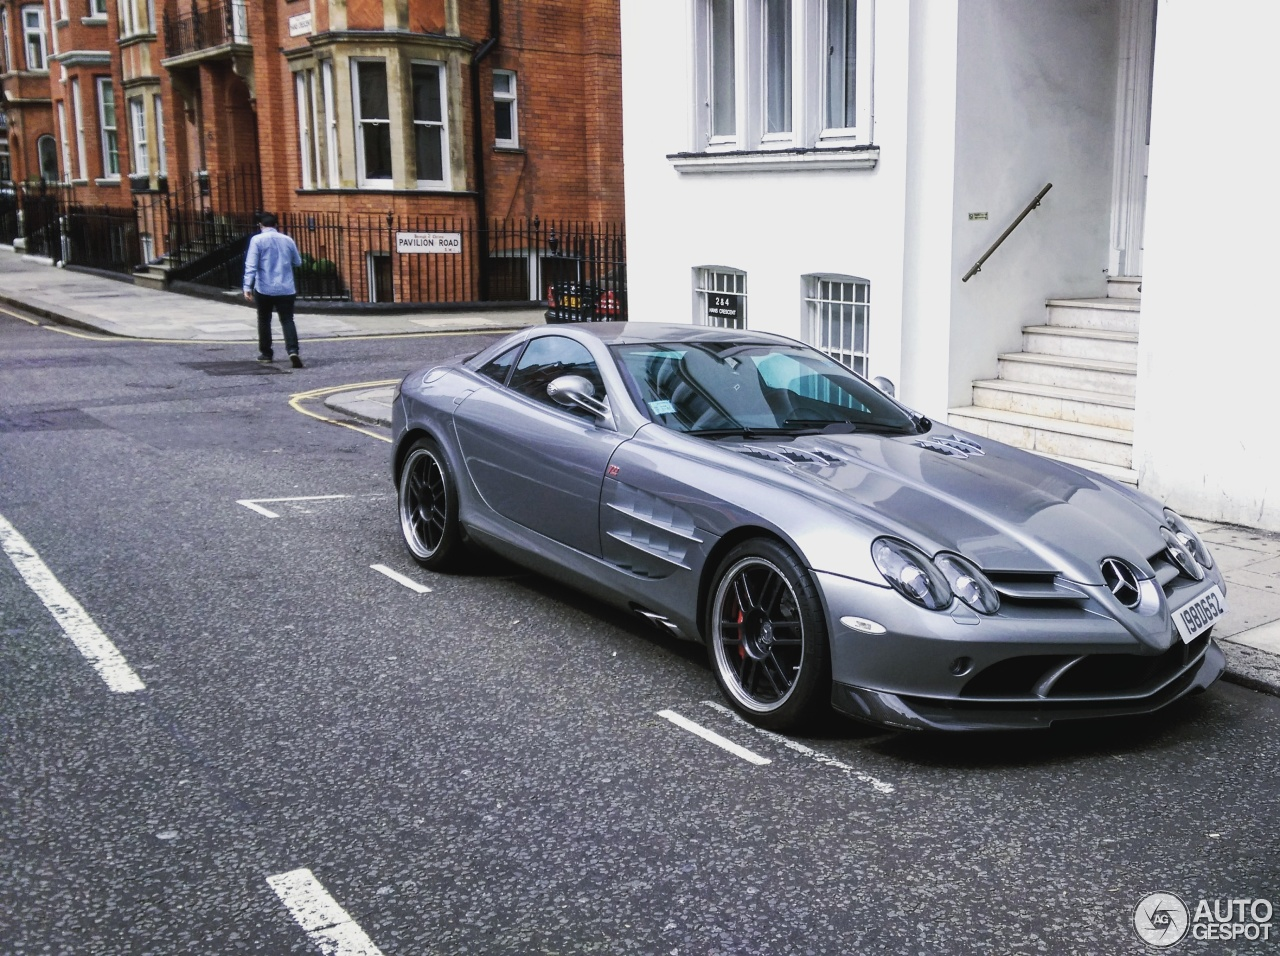 Mercedes benz slr mclaren 722 edition 21 april 2017 for Mercedes benz slr